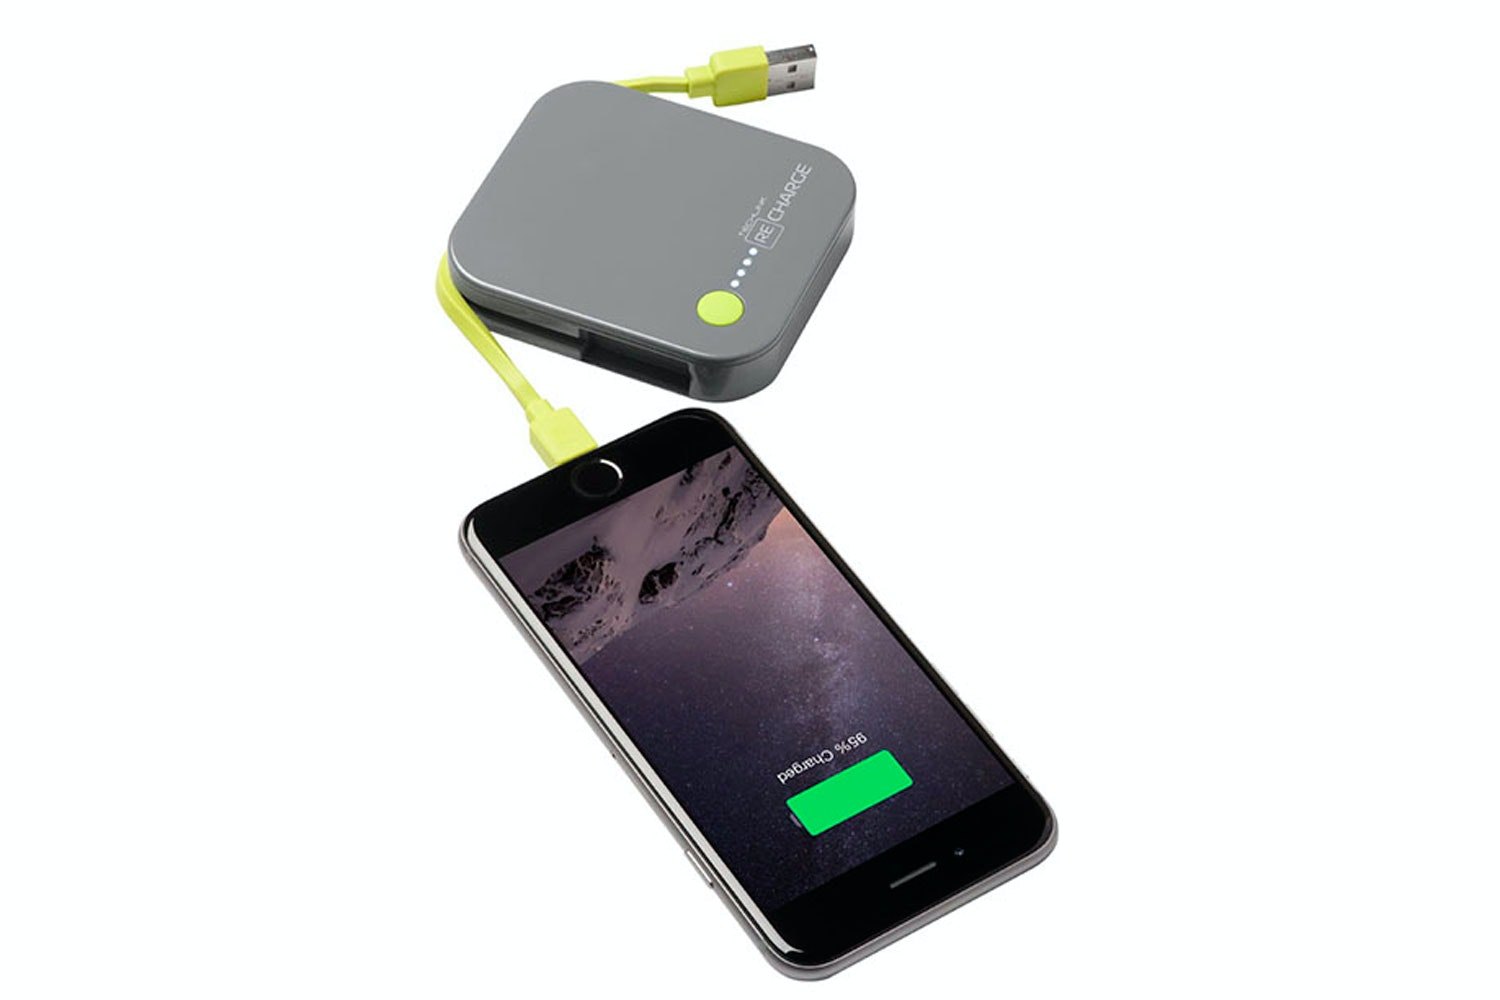 Techlink Recharge 4,000mAh Lightning Battery Pack